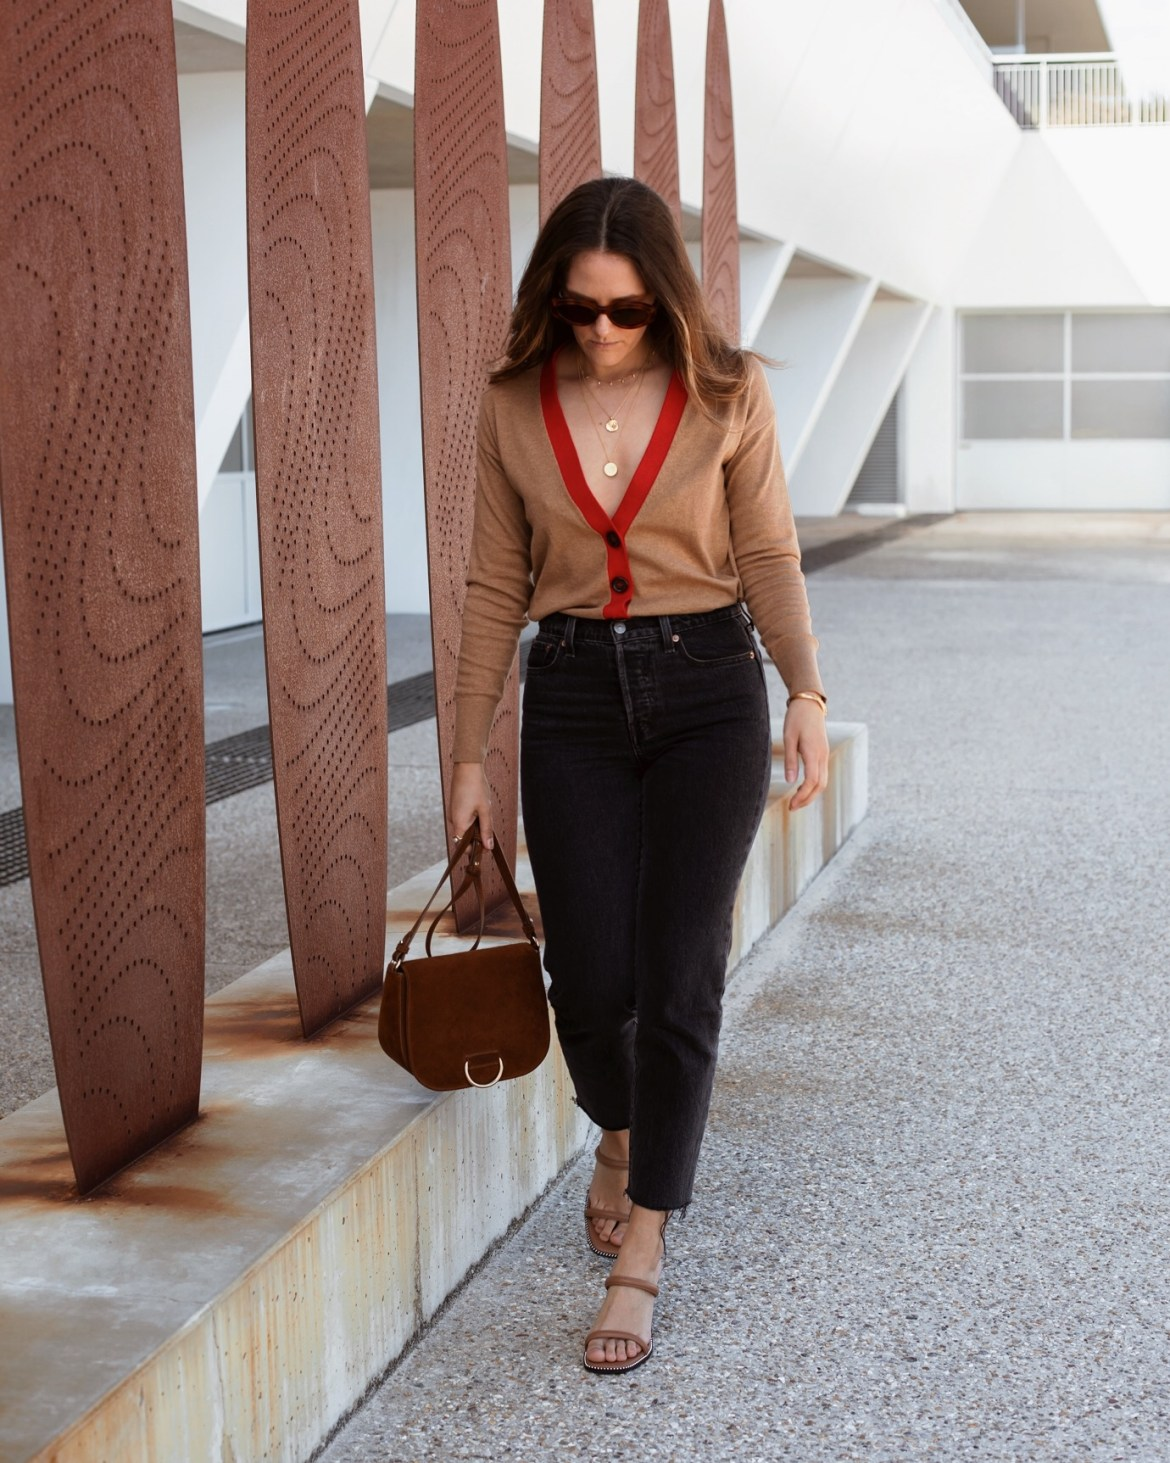 transition weather outfit idea with cardigan